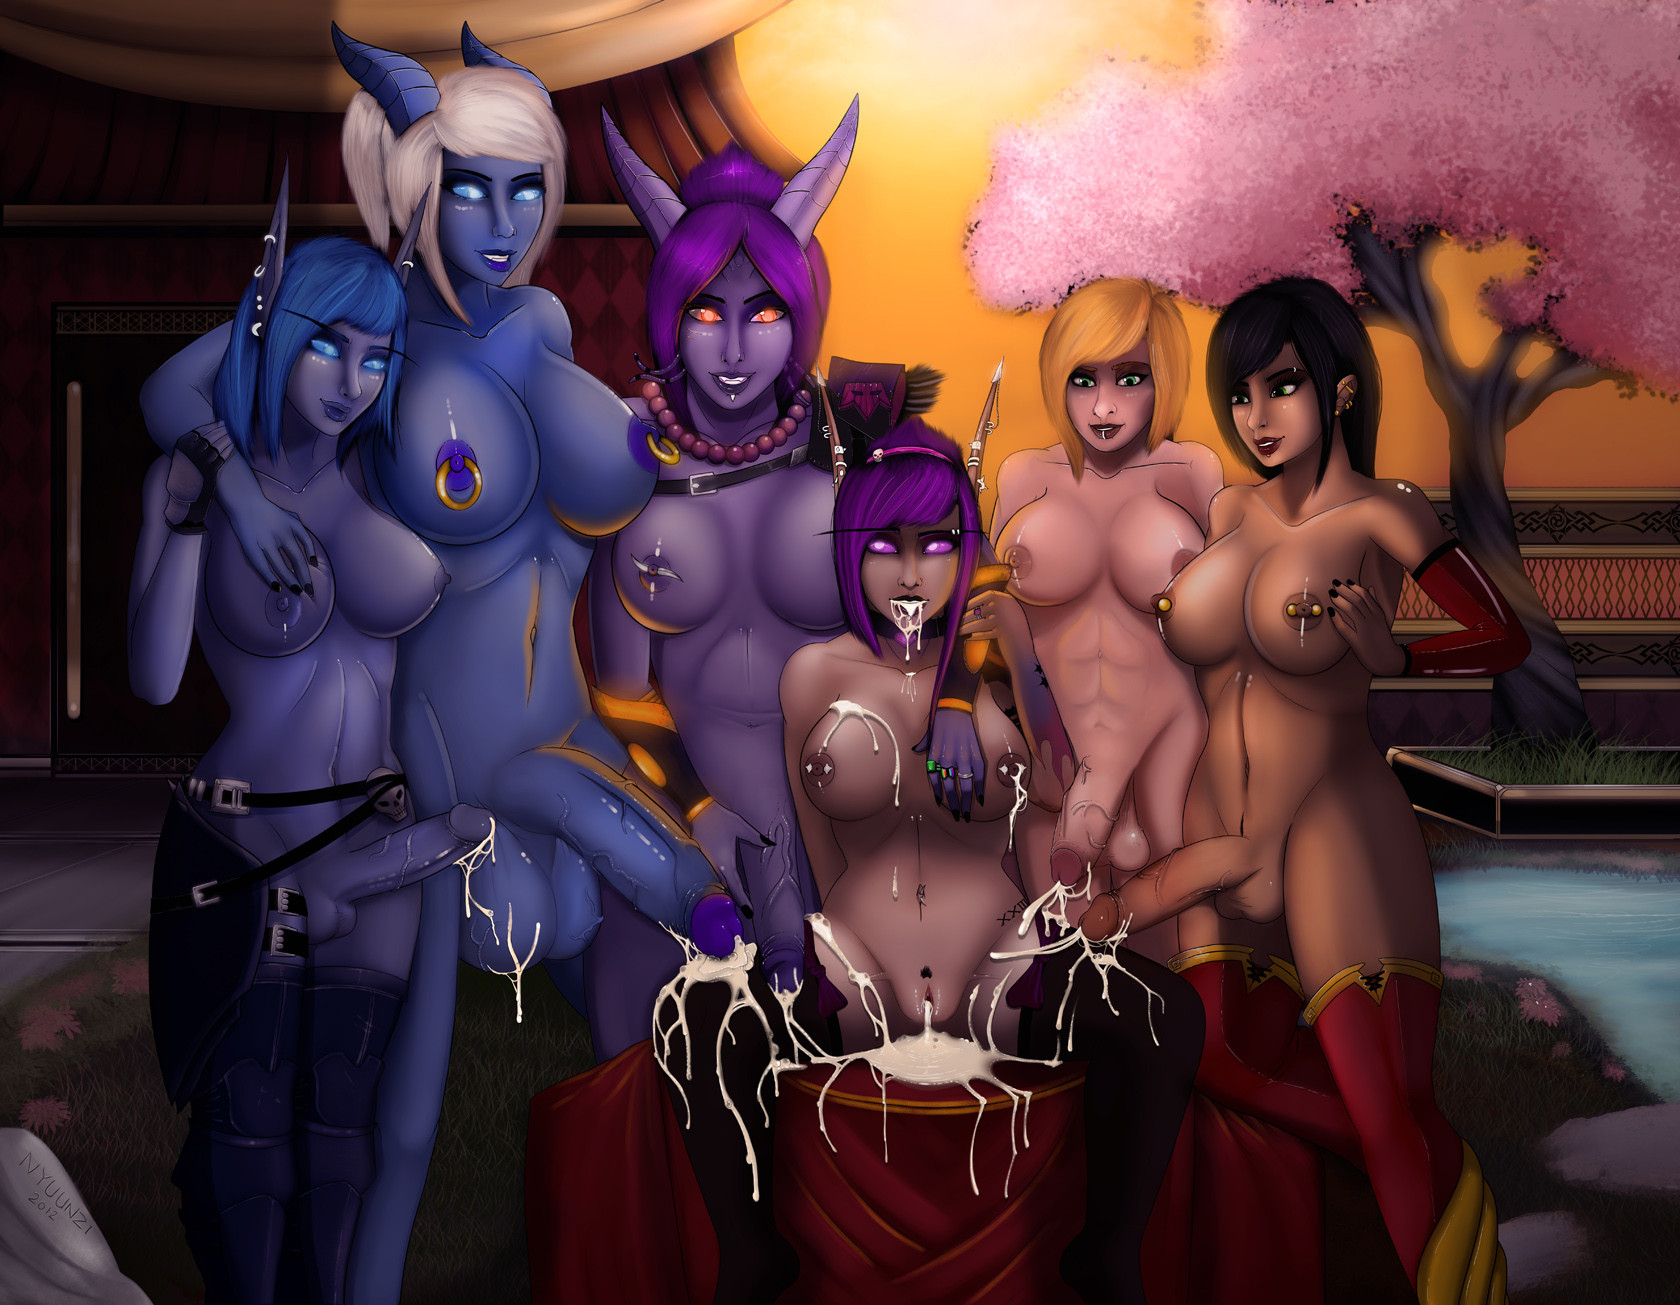 Free world of warcraft porno erotica movie